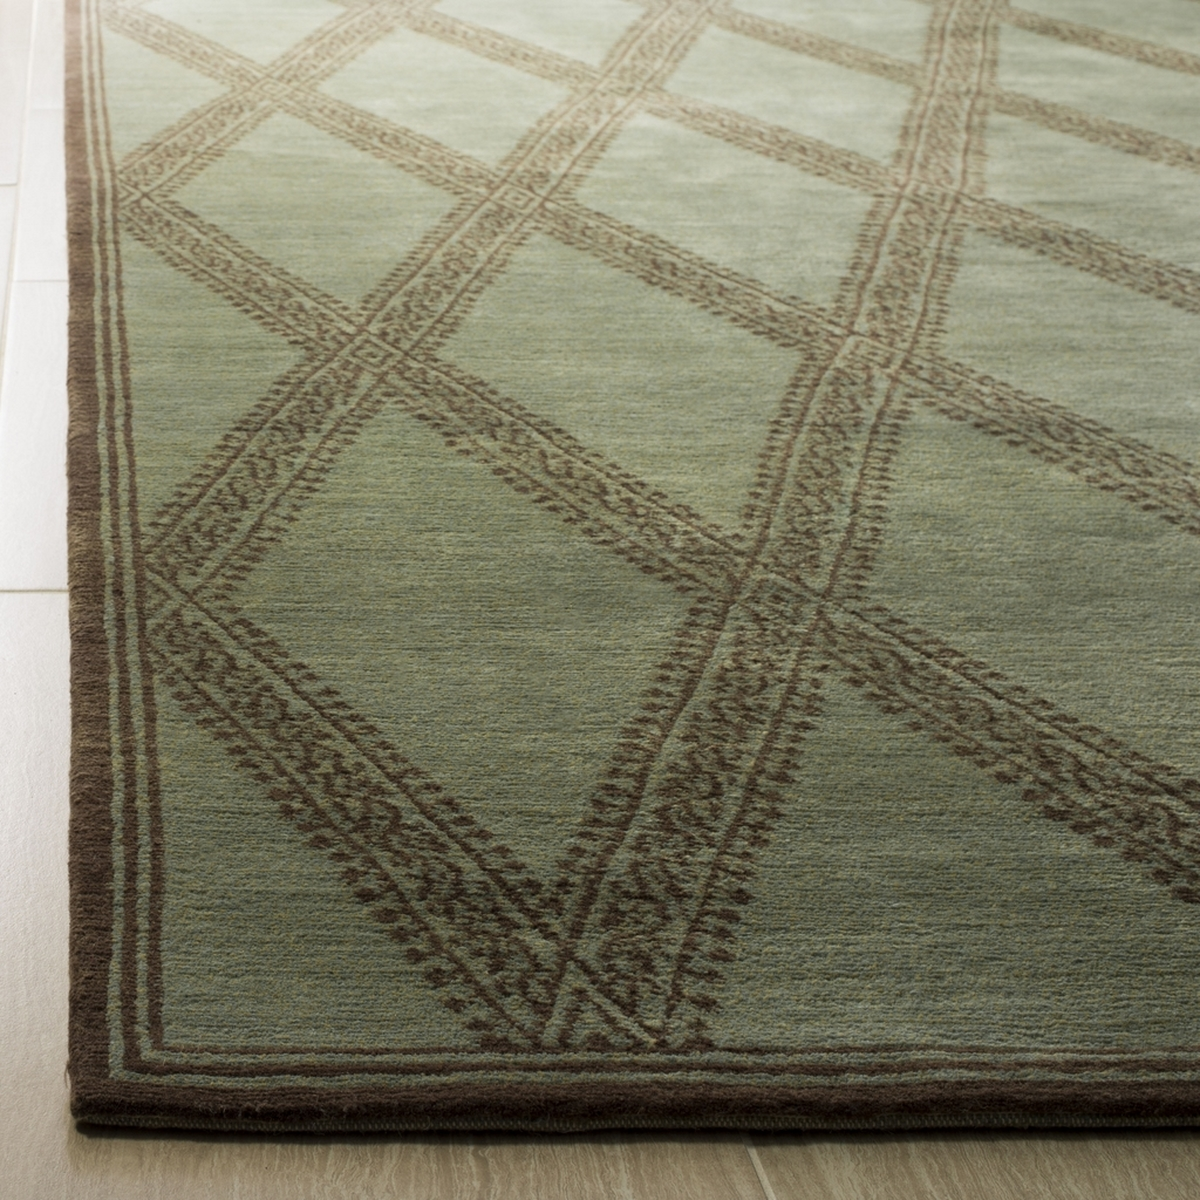 Distance From Fireplace To Rug: Thomas O'Brien Area Rugs By Safavieh